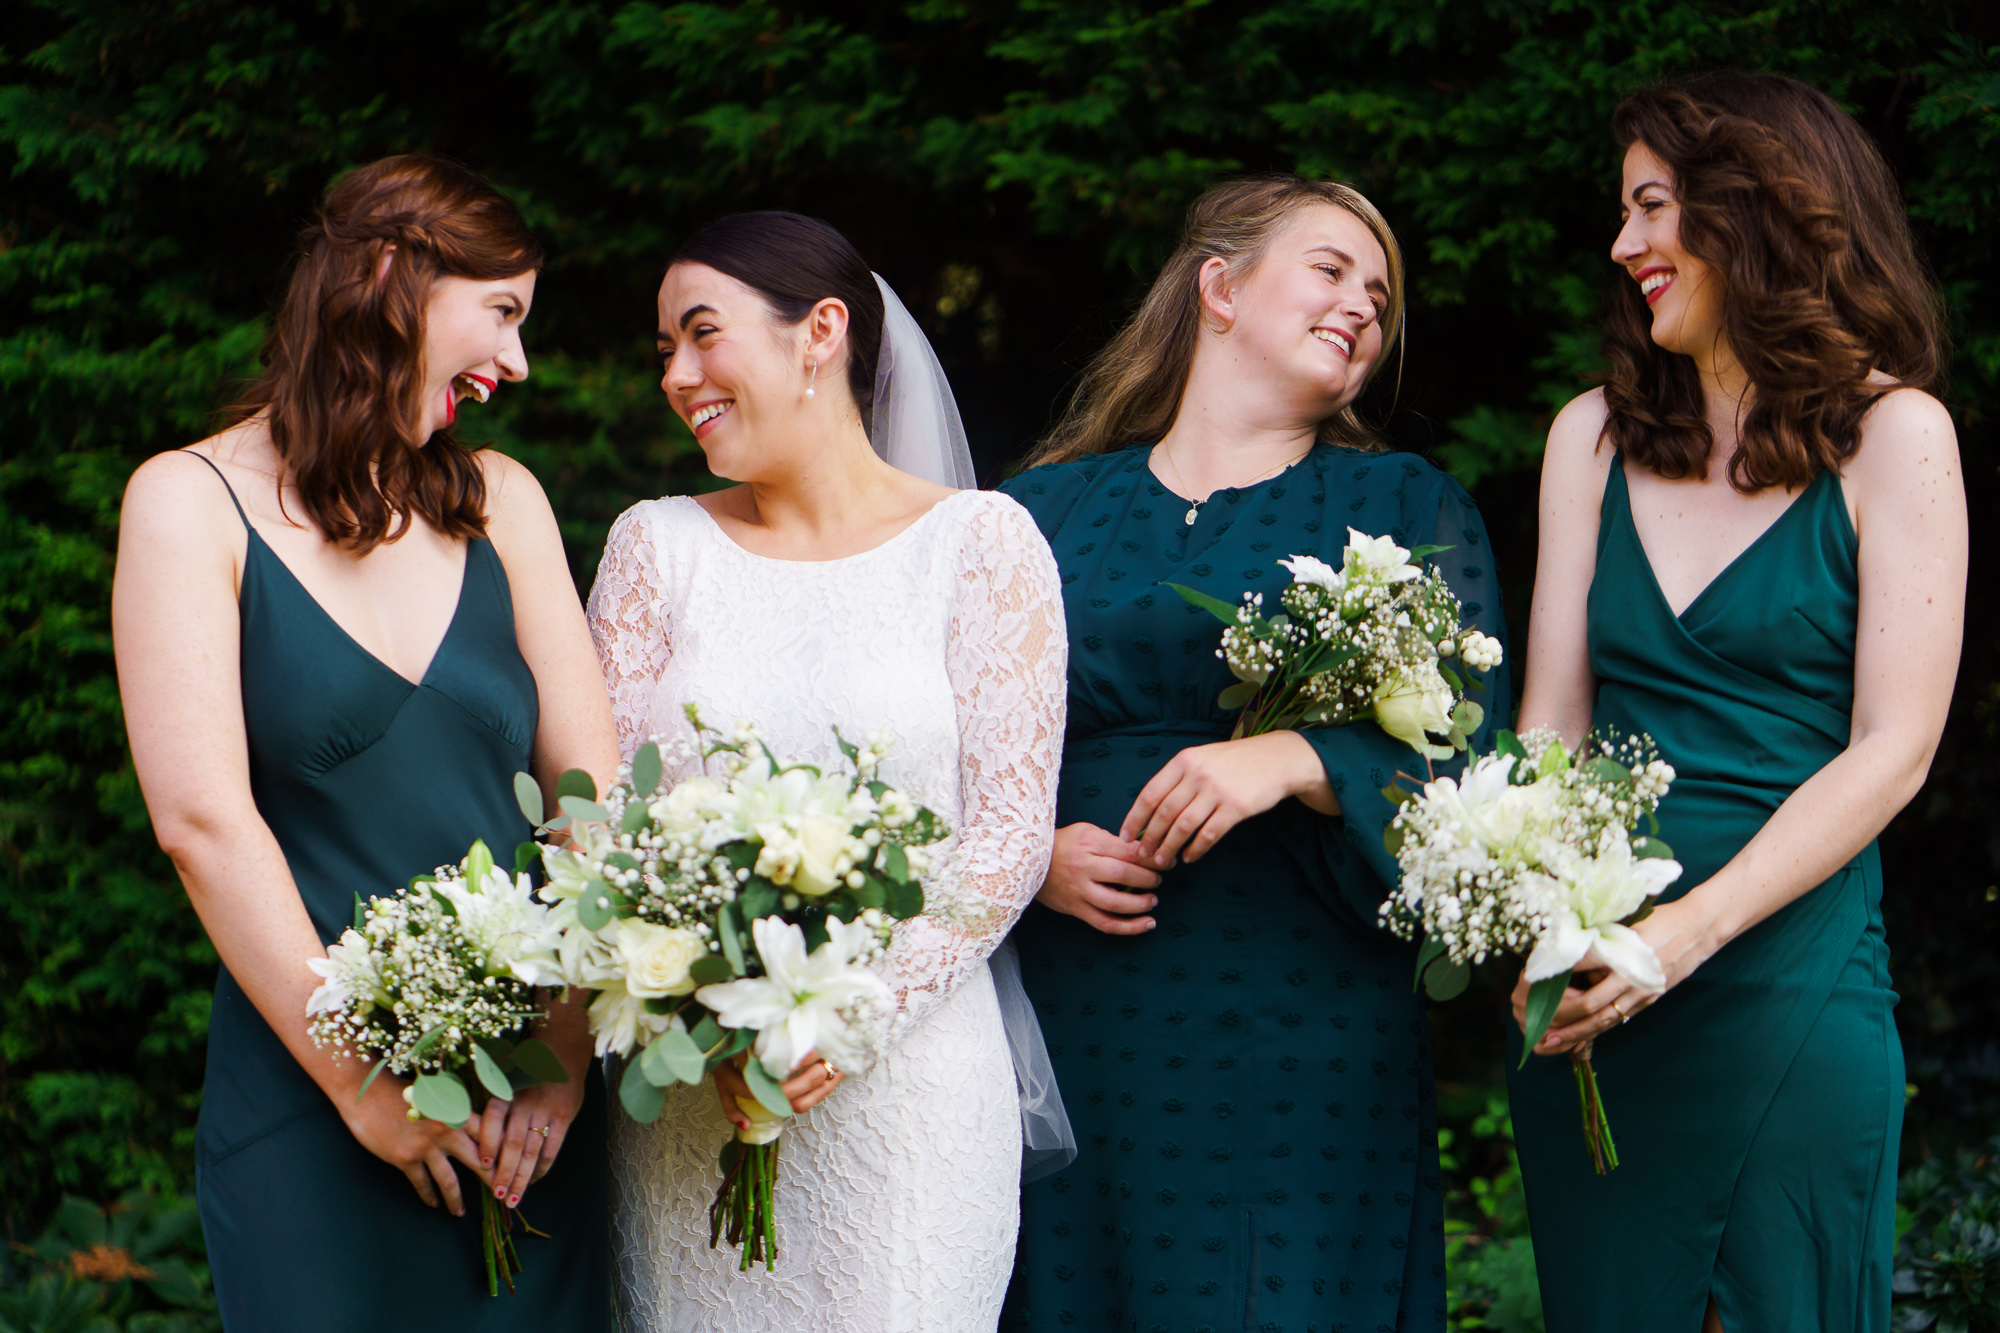 photo of bride and bridesmaids in green laughing